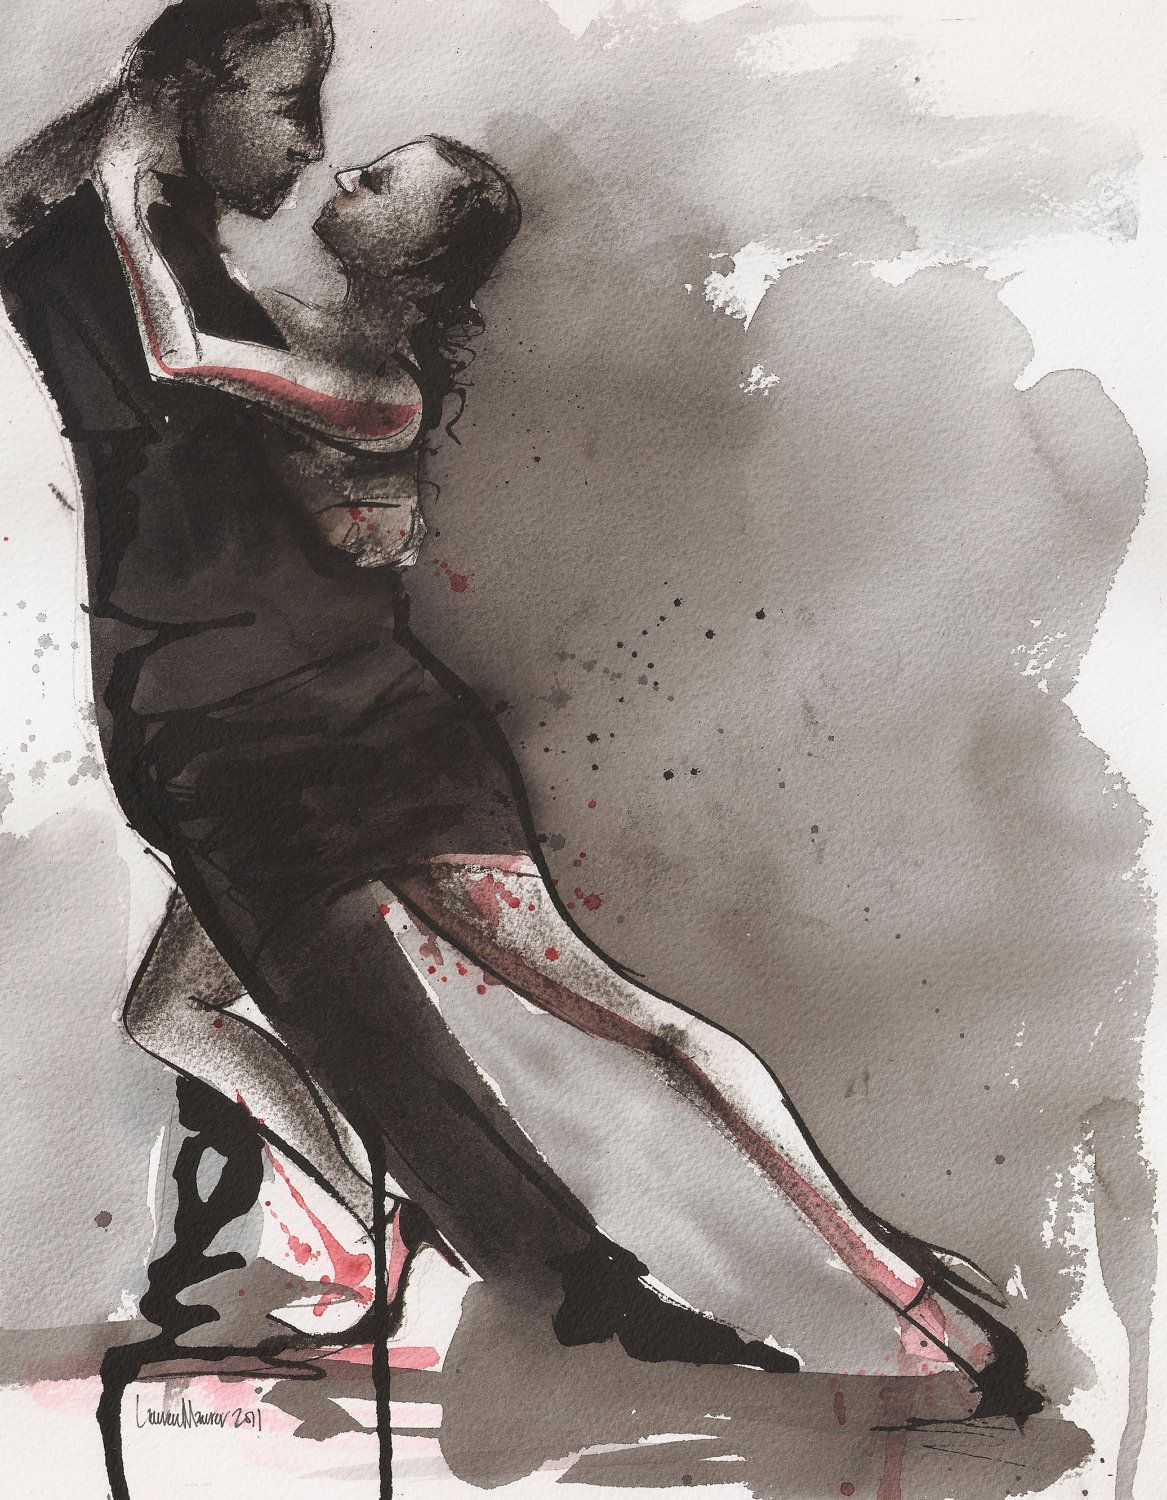 Print - Watercolor and Charcoal -  Untitled Tango 2- 11x14 - Lauren Maurer Artworks on Etsy. $25.00, via Etsy.